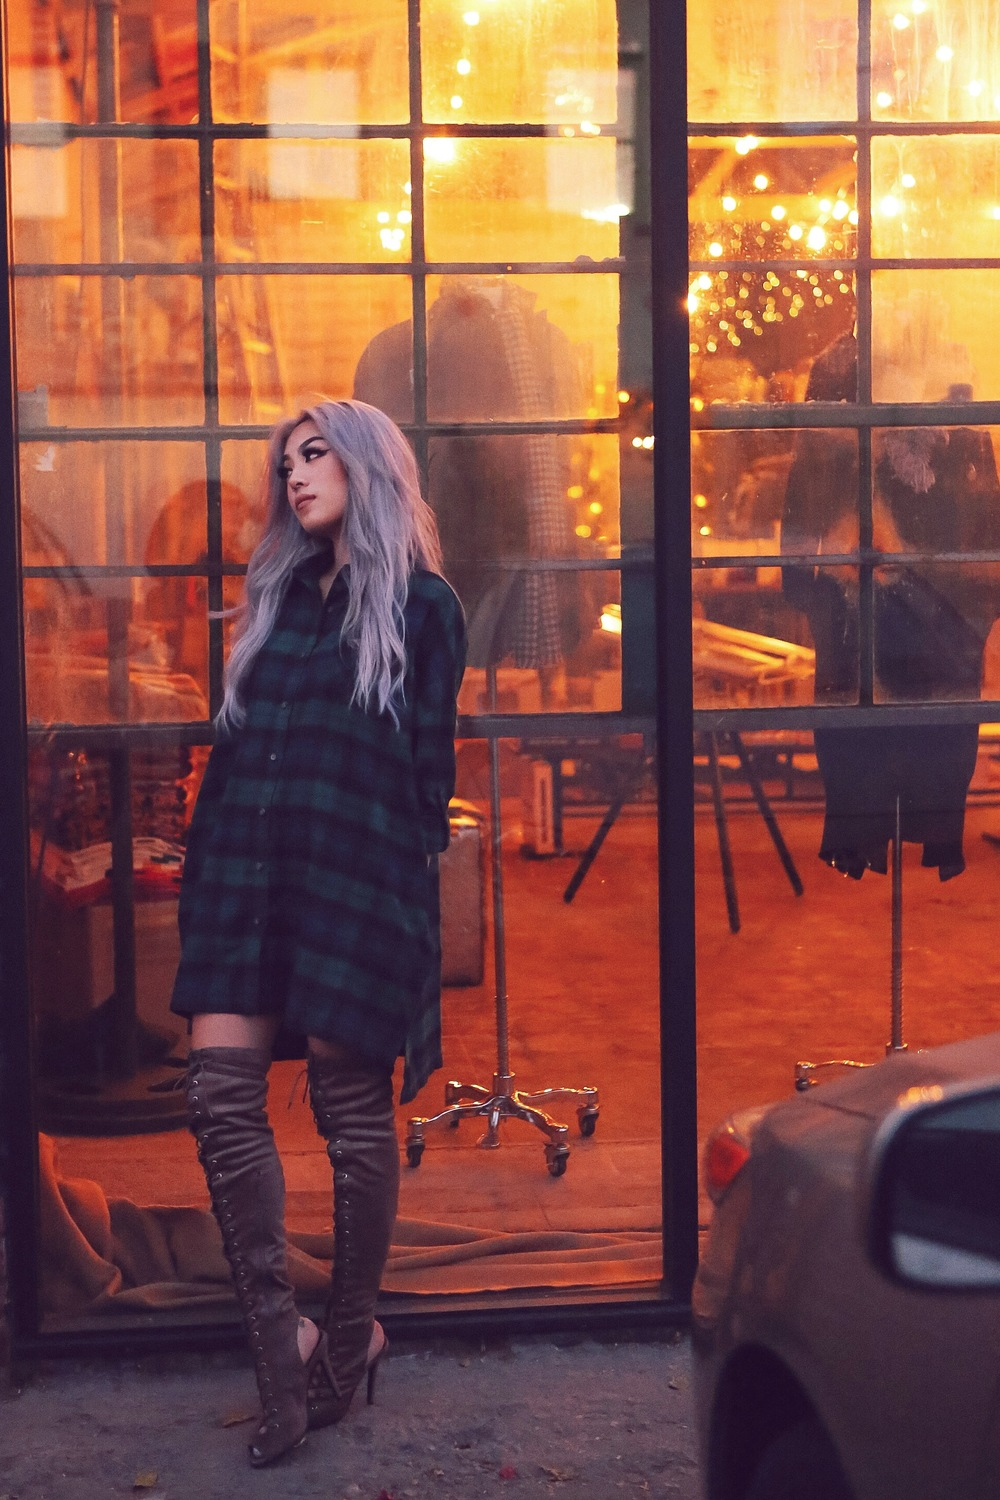 Windsor Kylie Plaid Tunic / Blu Boutique Lace-Up Boots / Lack of Color Montana Hidden Shadows Photography by Jeff Fernandez (@yojefff)